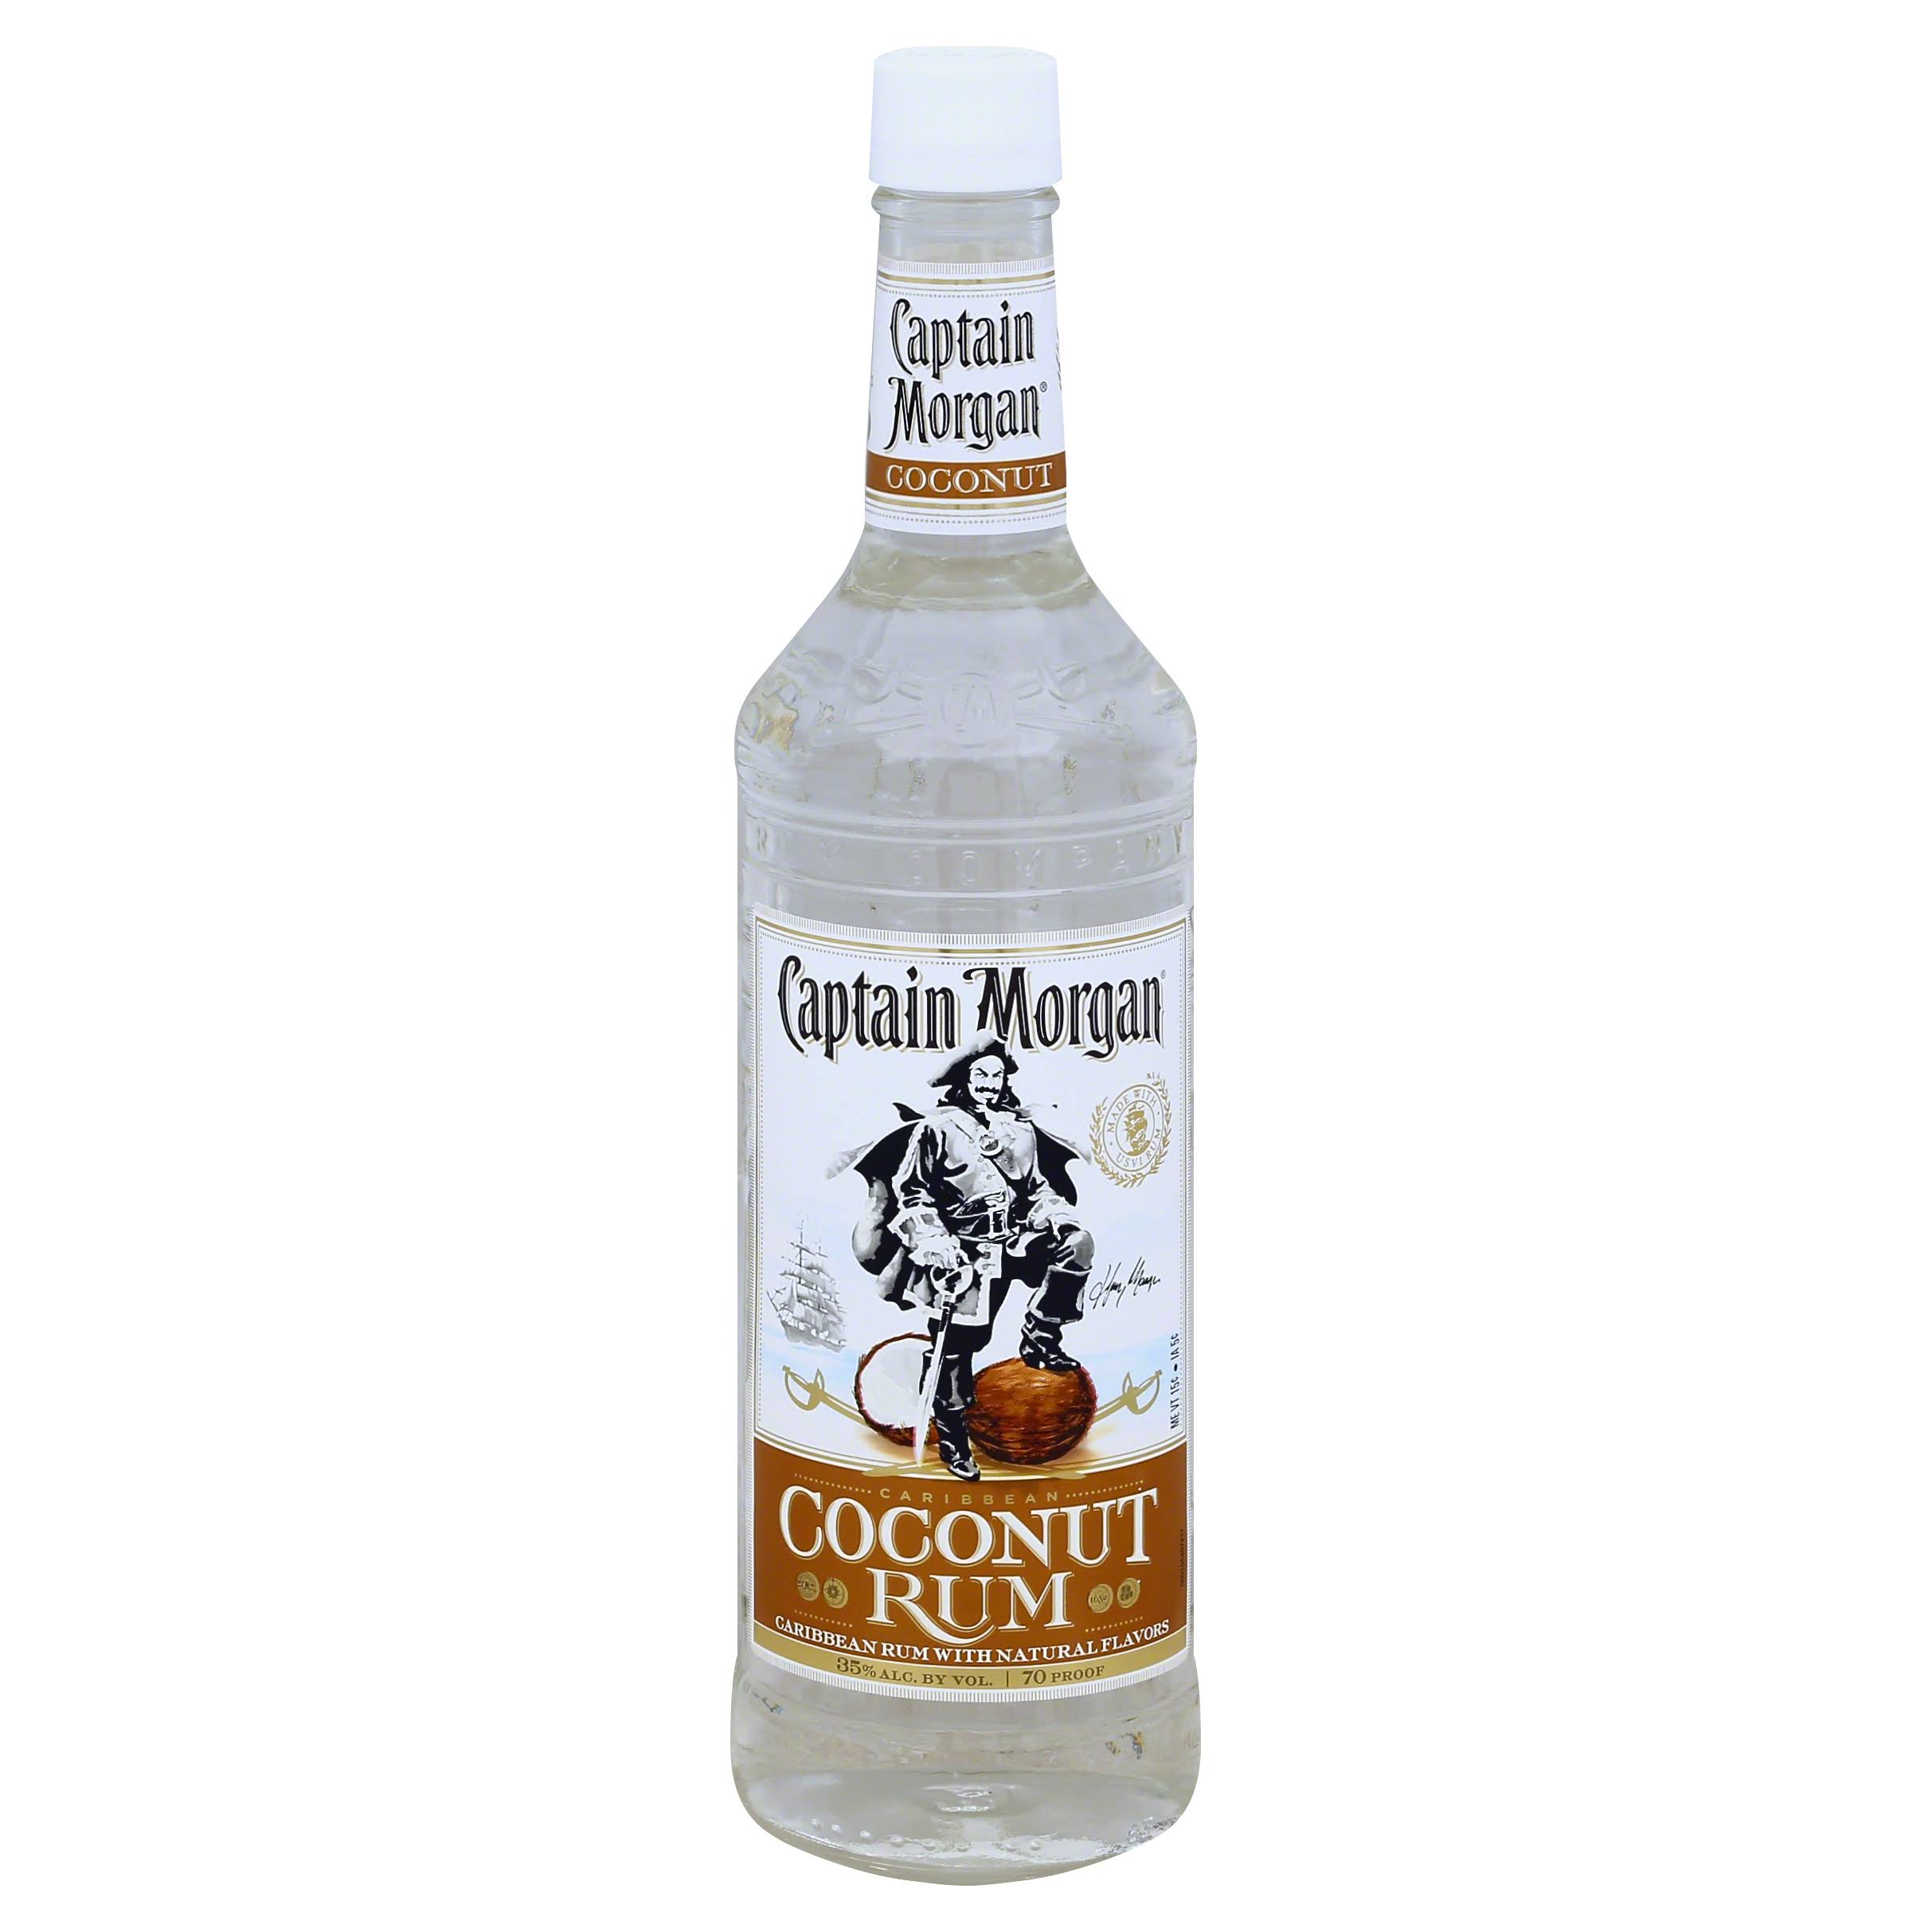 Captain Morgan Rum, Caribbean, Coconut - 750 ml